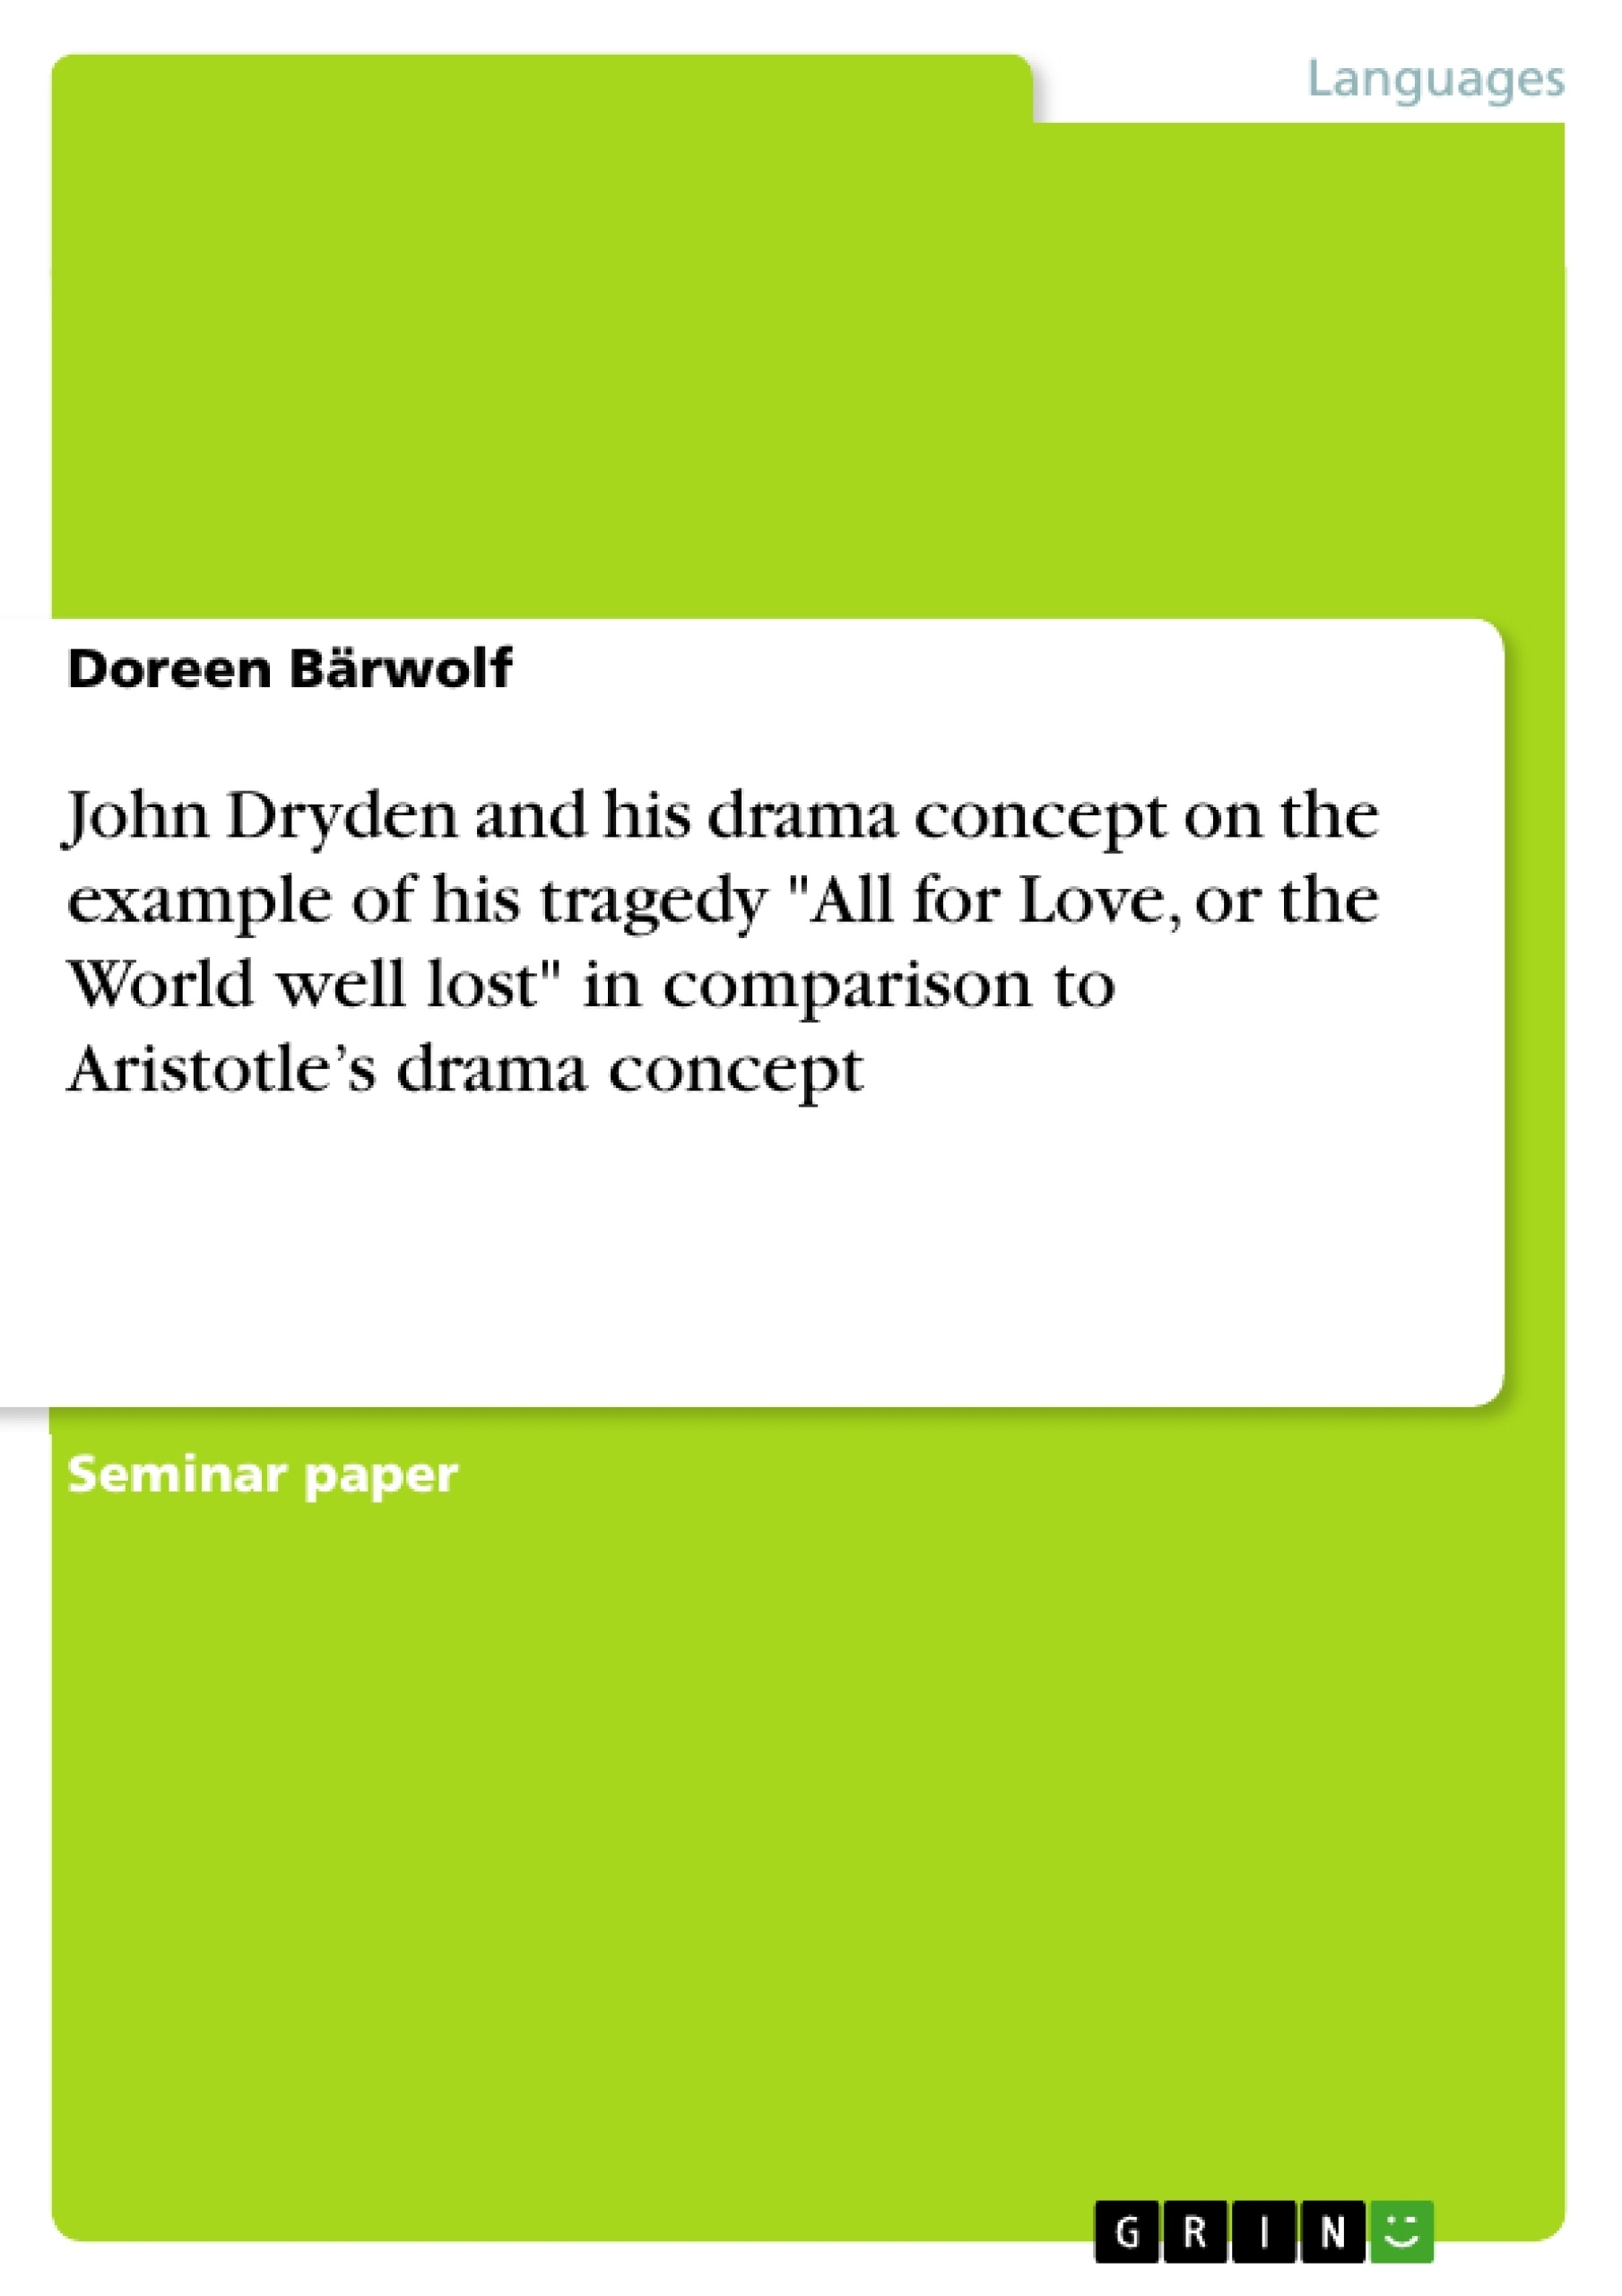 """Title: John Dryden and his drama concept on the example of his tragedy """"All for Love, or the World well lost"""" in comparison to Aristotle's drama concept"""